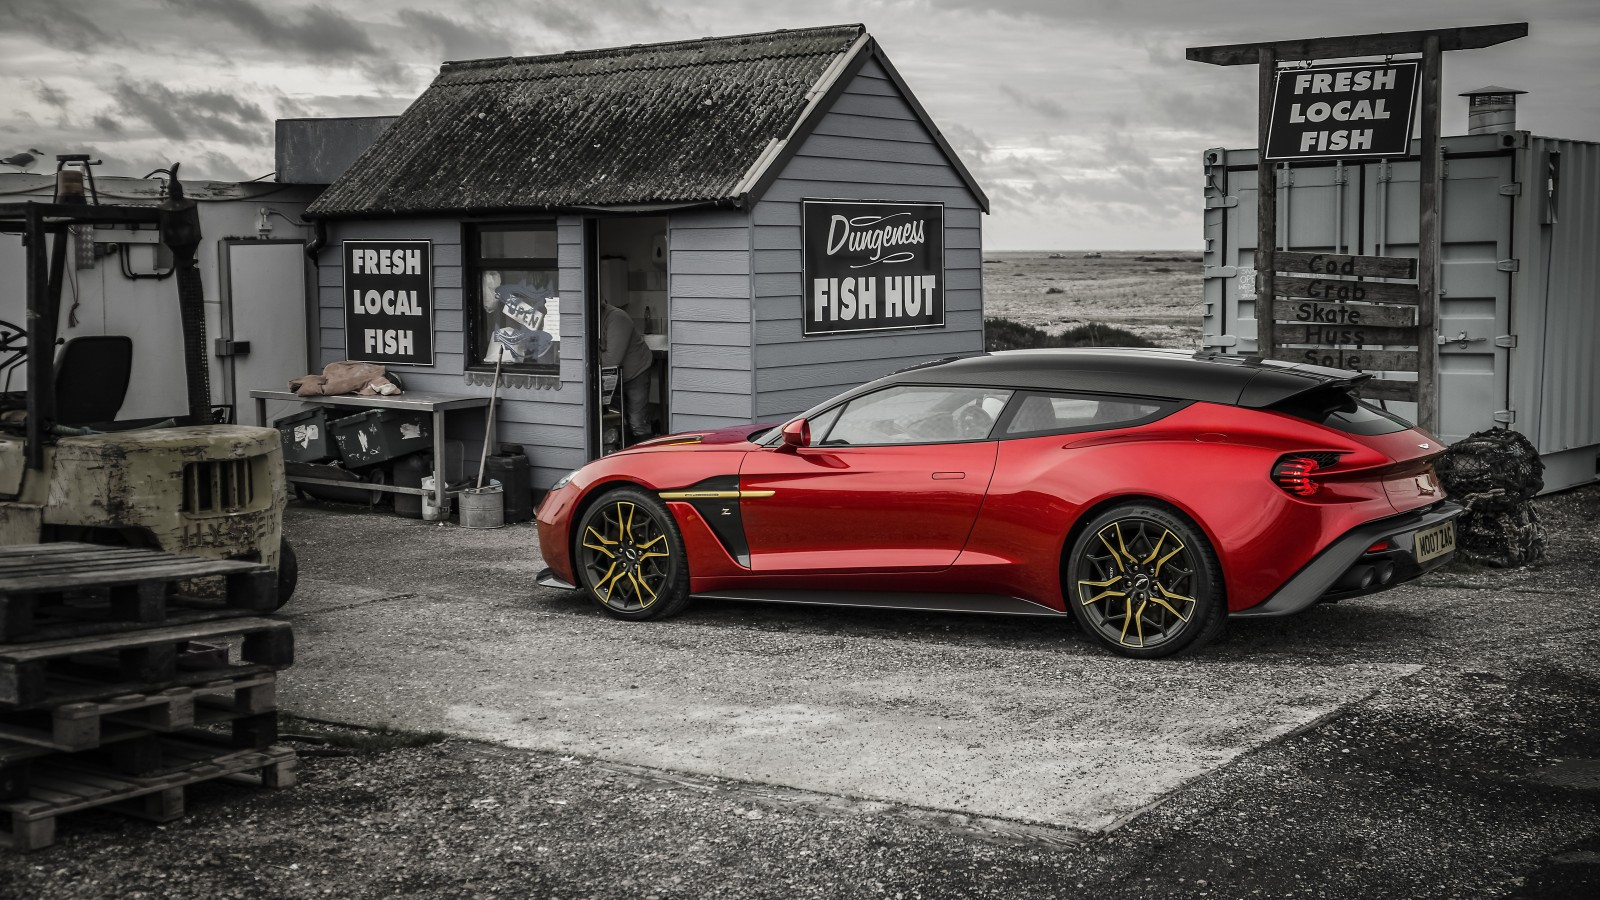 3d Beach Wallpaper Desktop Aston Martin Vanquish Zagato Shooting Brake 4k 8k